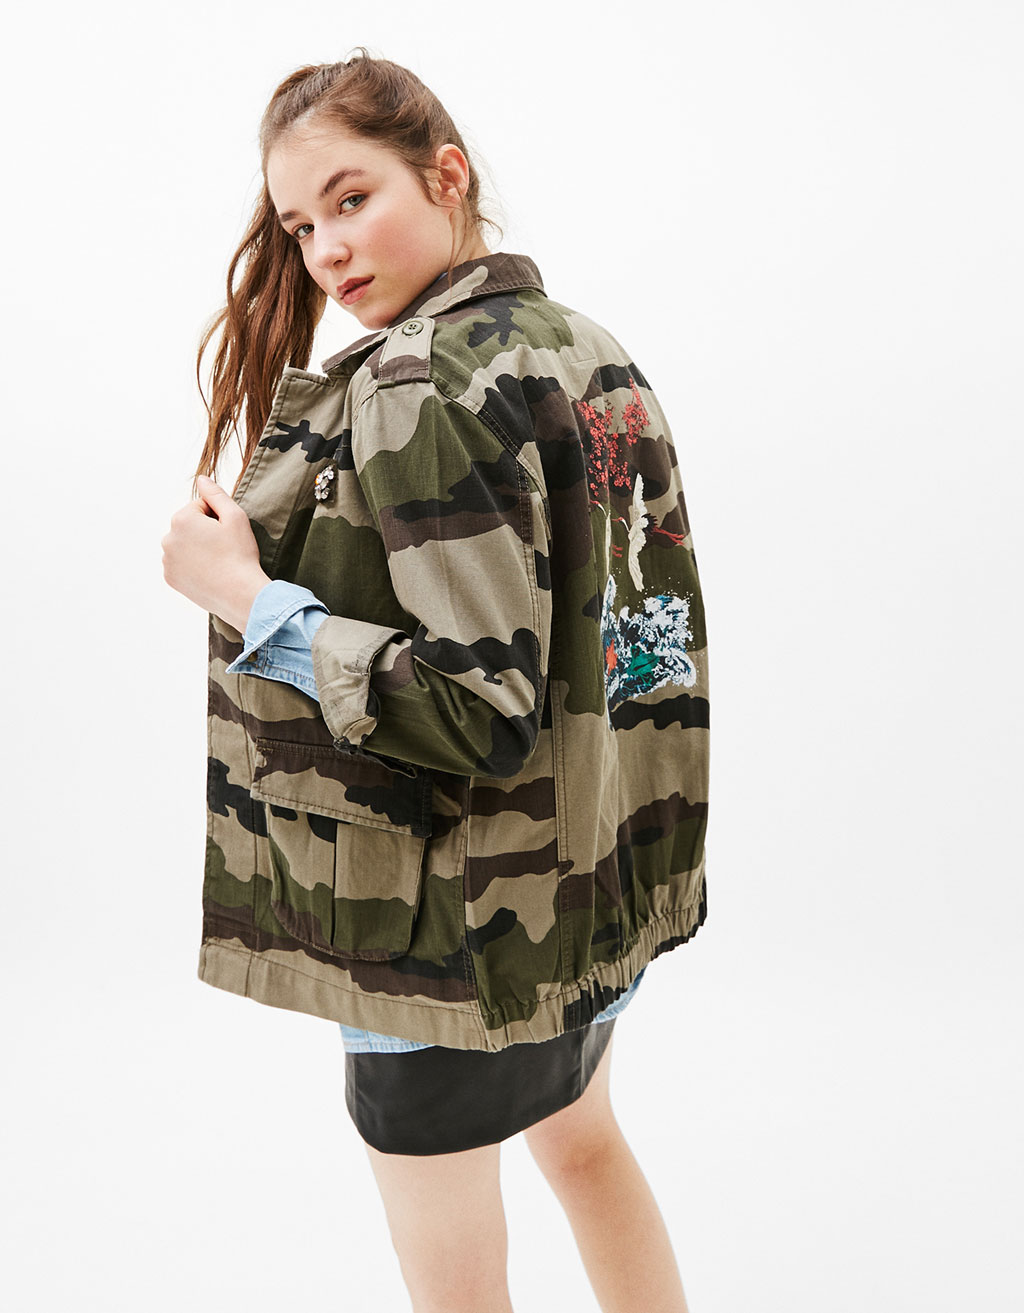 Camouflage safari jacket with oriental print on back